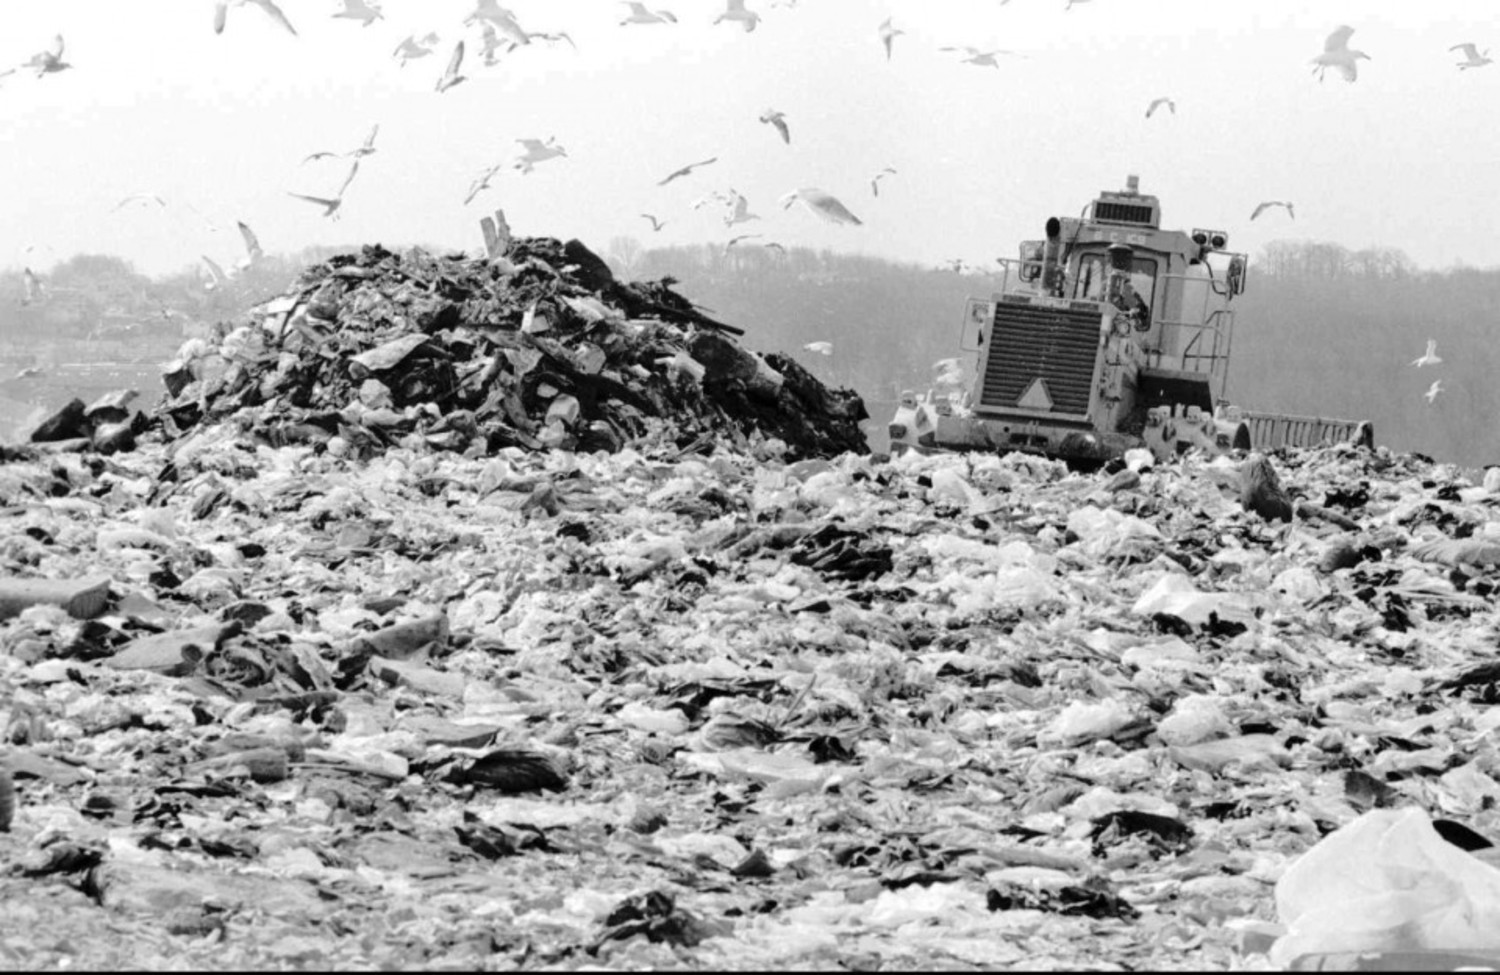 A 'Compactor' pulls up along side of a freshly dropped pile of garbage at the landfill. Circa 1996.